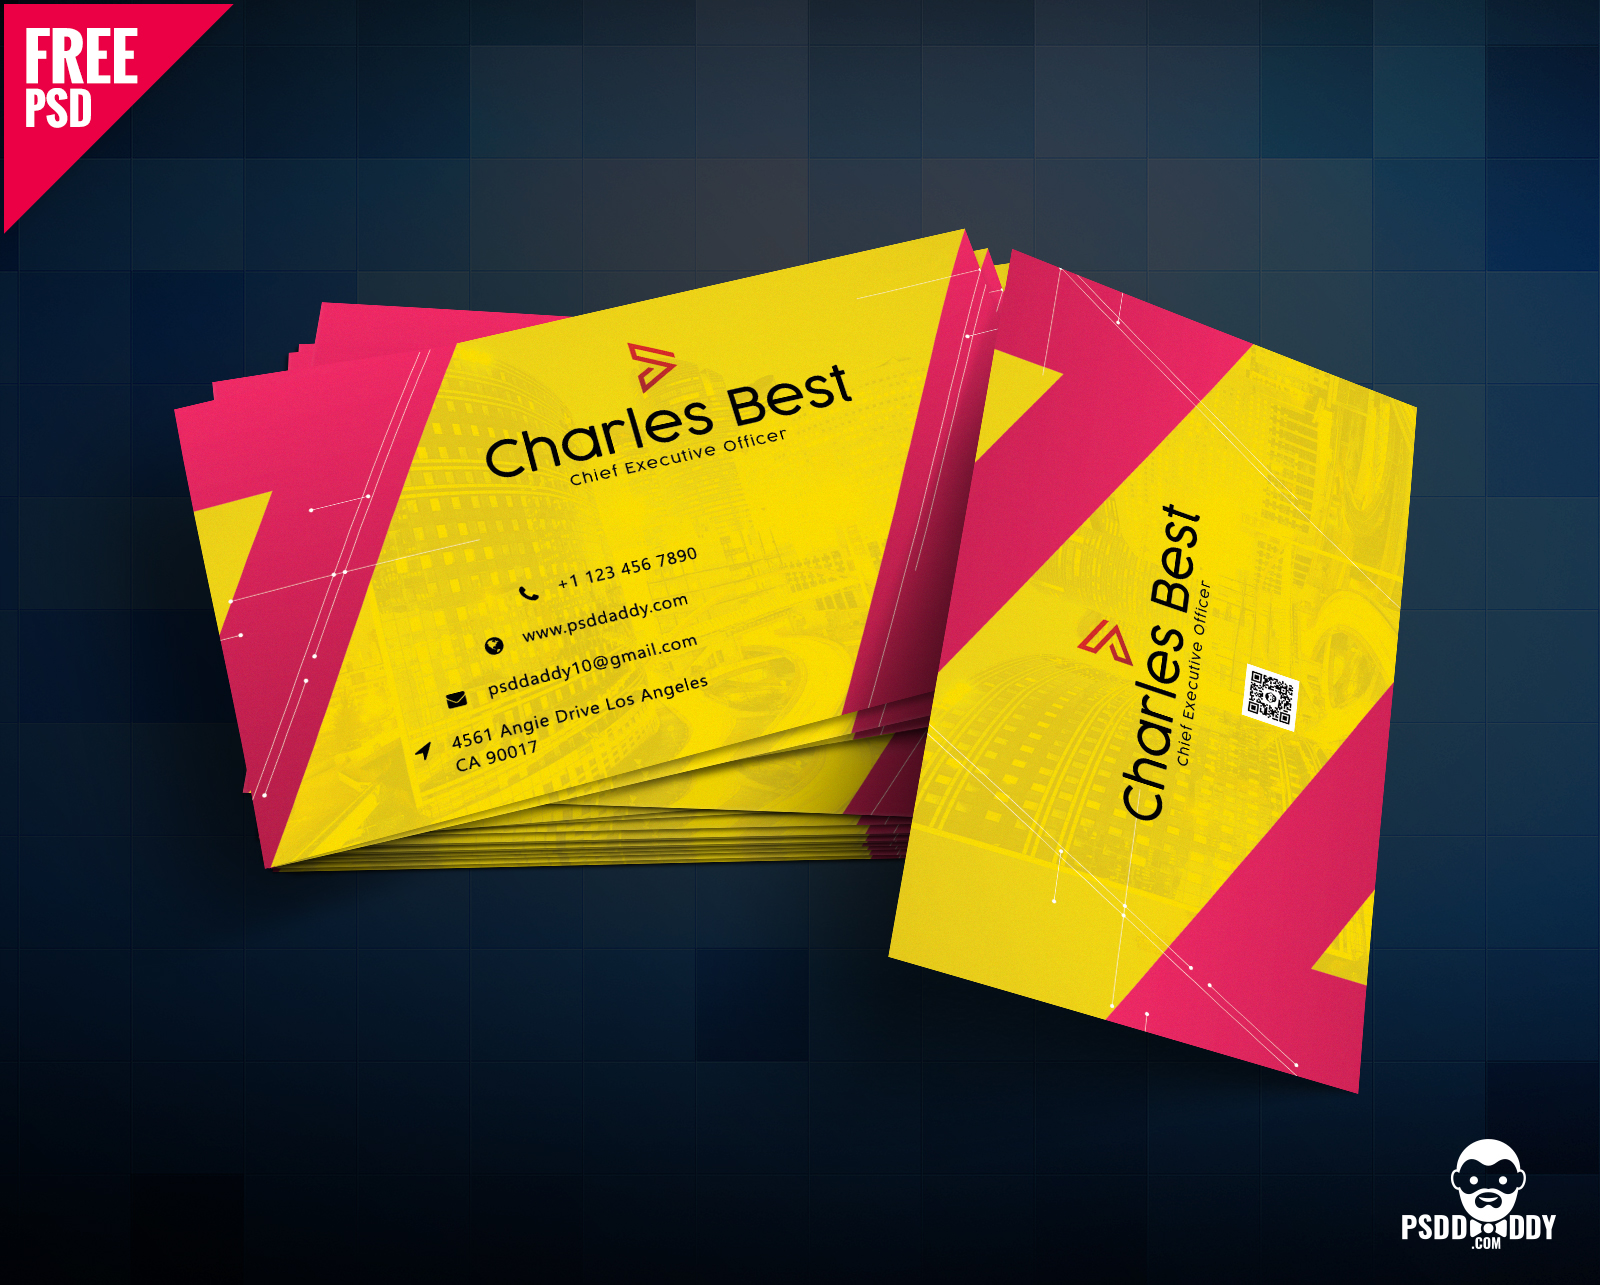 Creative business card template psd free download psddaddy business card design business card design templates business card dimensions business card holder wajeb Image collections